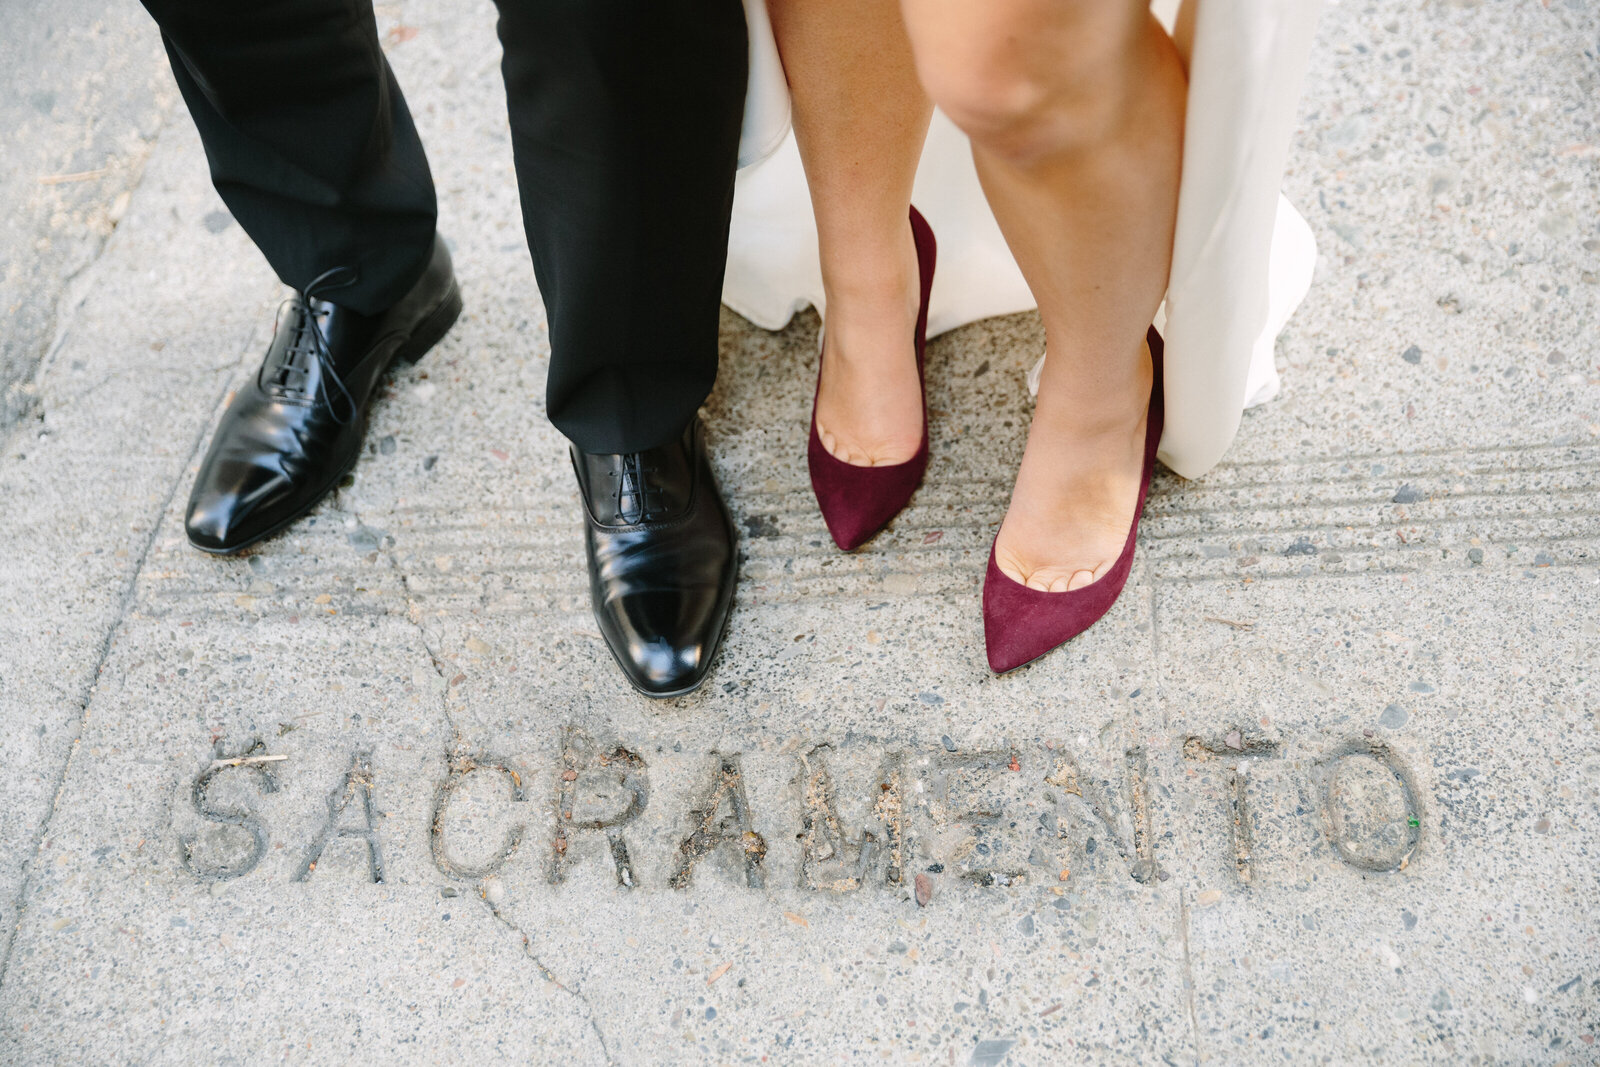 larissa-cleveland-elope-eleopement-intimate-wedding-photographer-san-francisco-napa-carmel-099